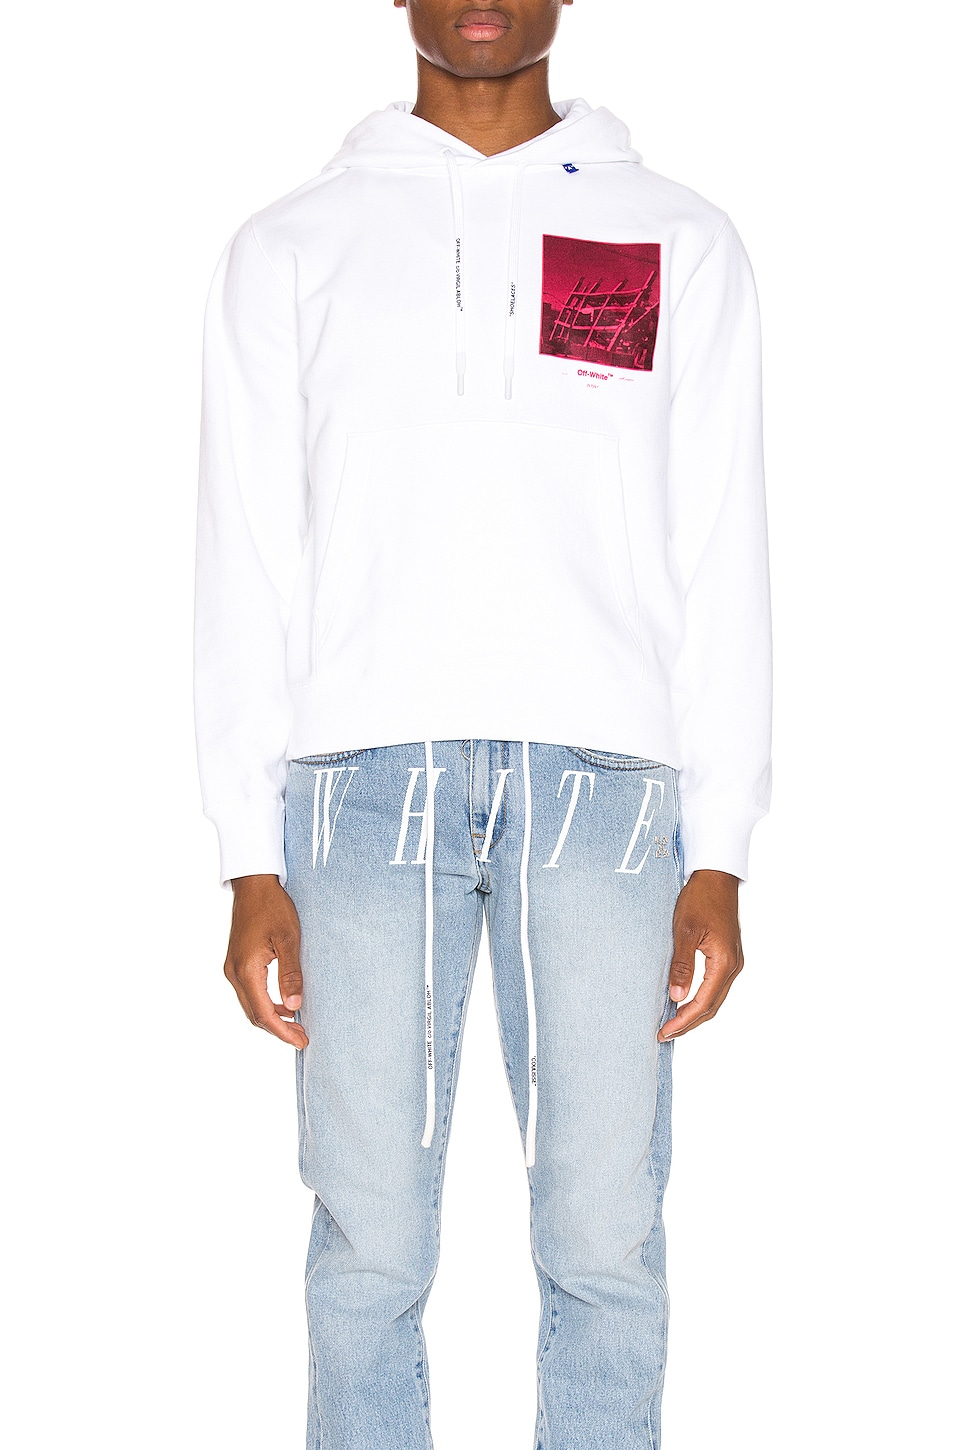 OFF-WHITE Halftone Arrows Hoodie in White & Fuchsia